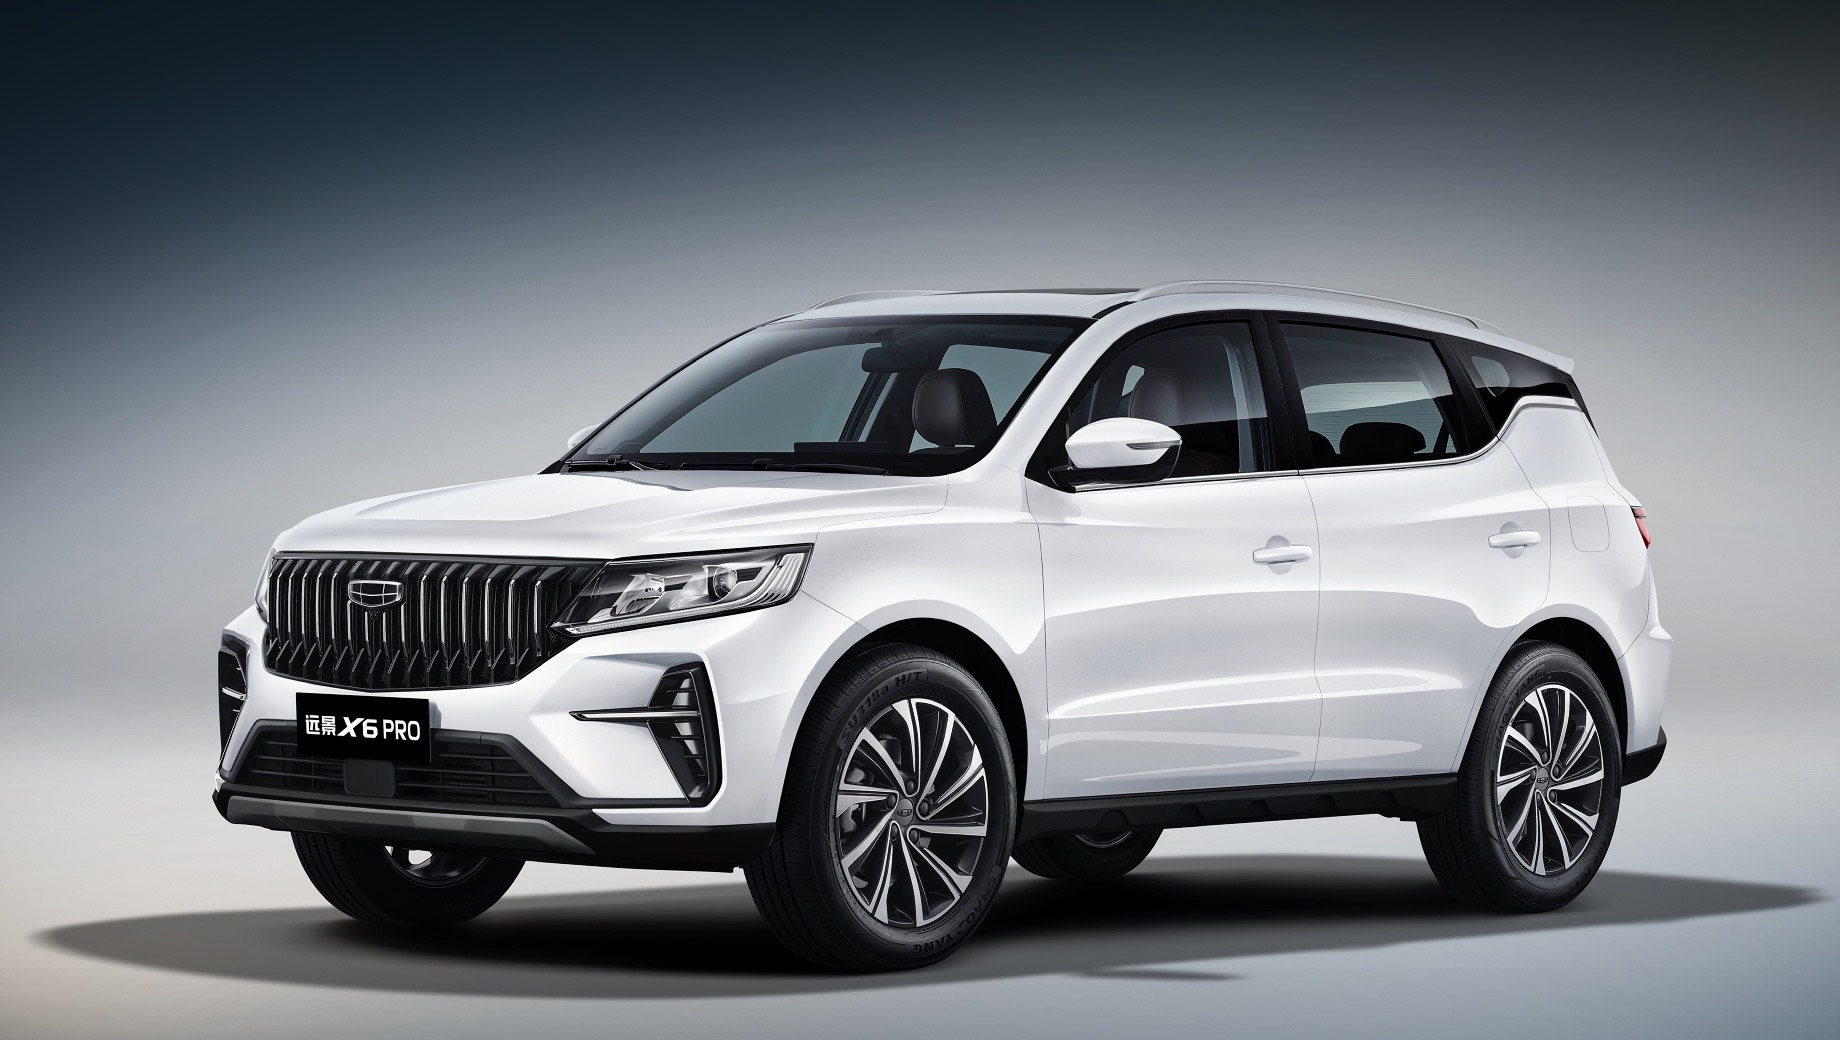 Geely has shared the photos of the 2022 Vision X6 Pro, the fifth mid-generational refresh of the X6 crossover SUV throughout its nine-year-long history. The sales will begin later this month, although prices remain to be announced.